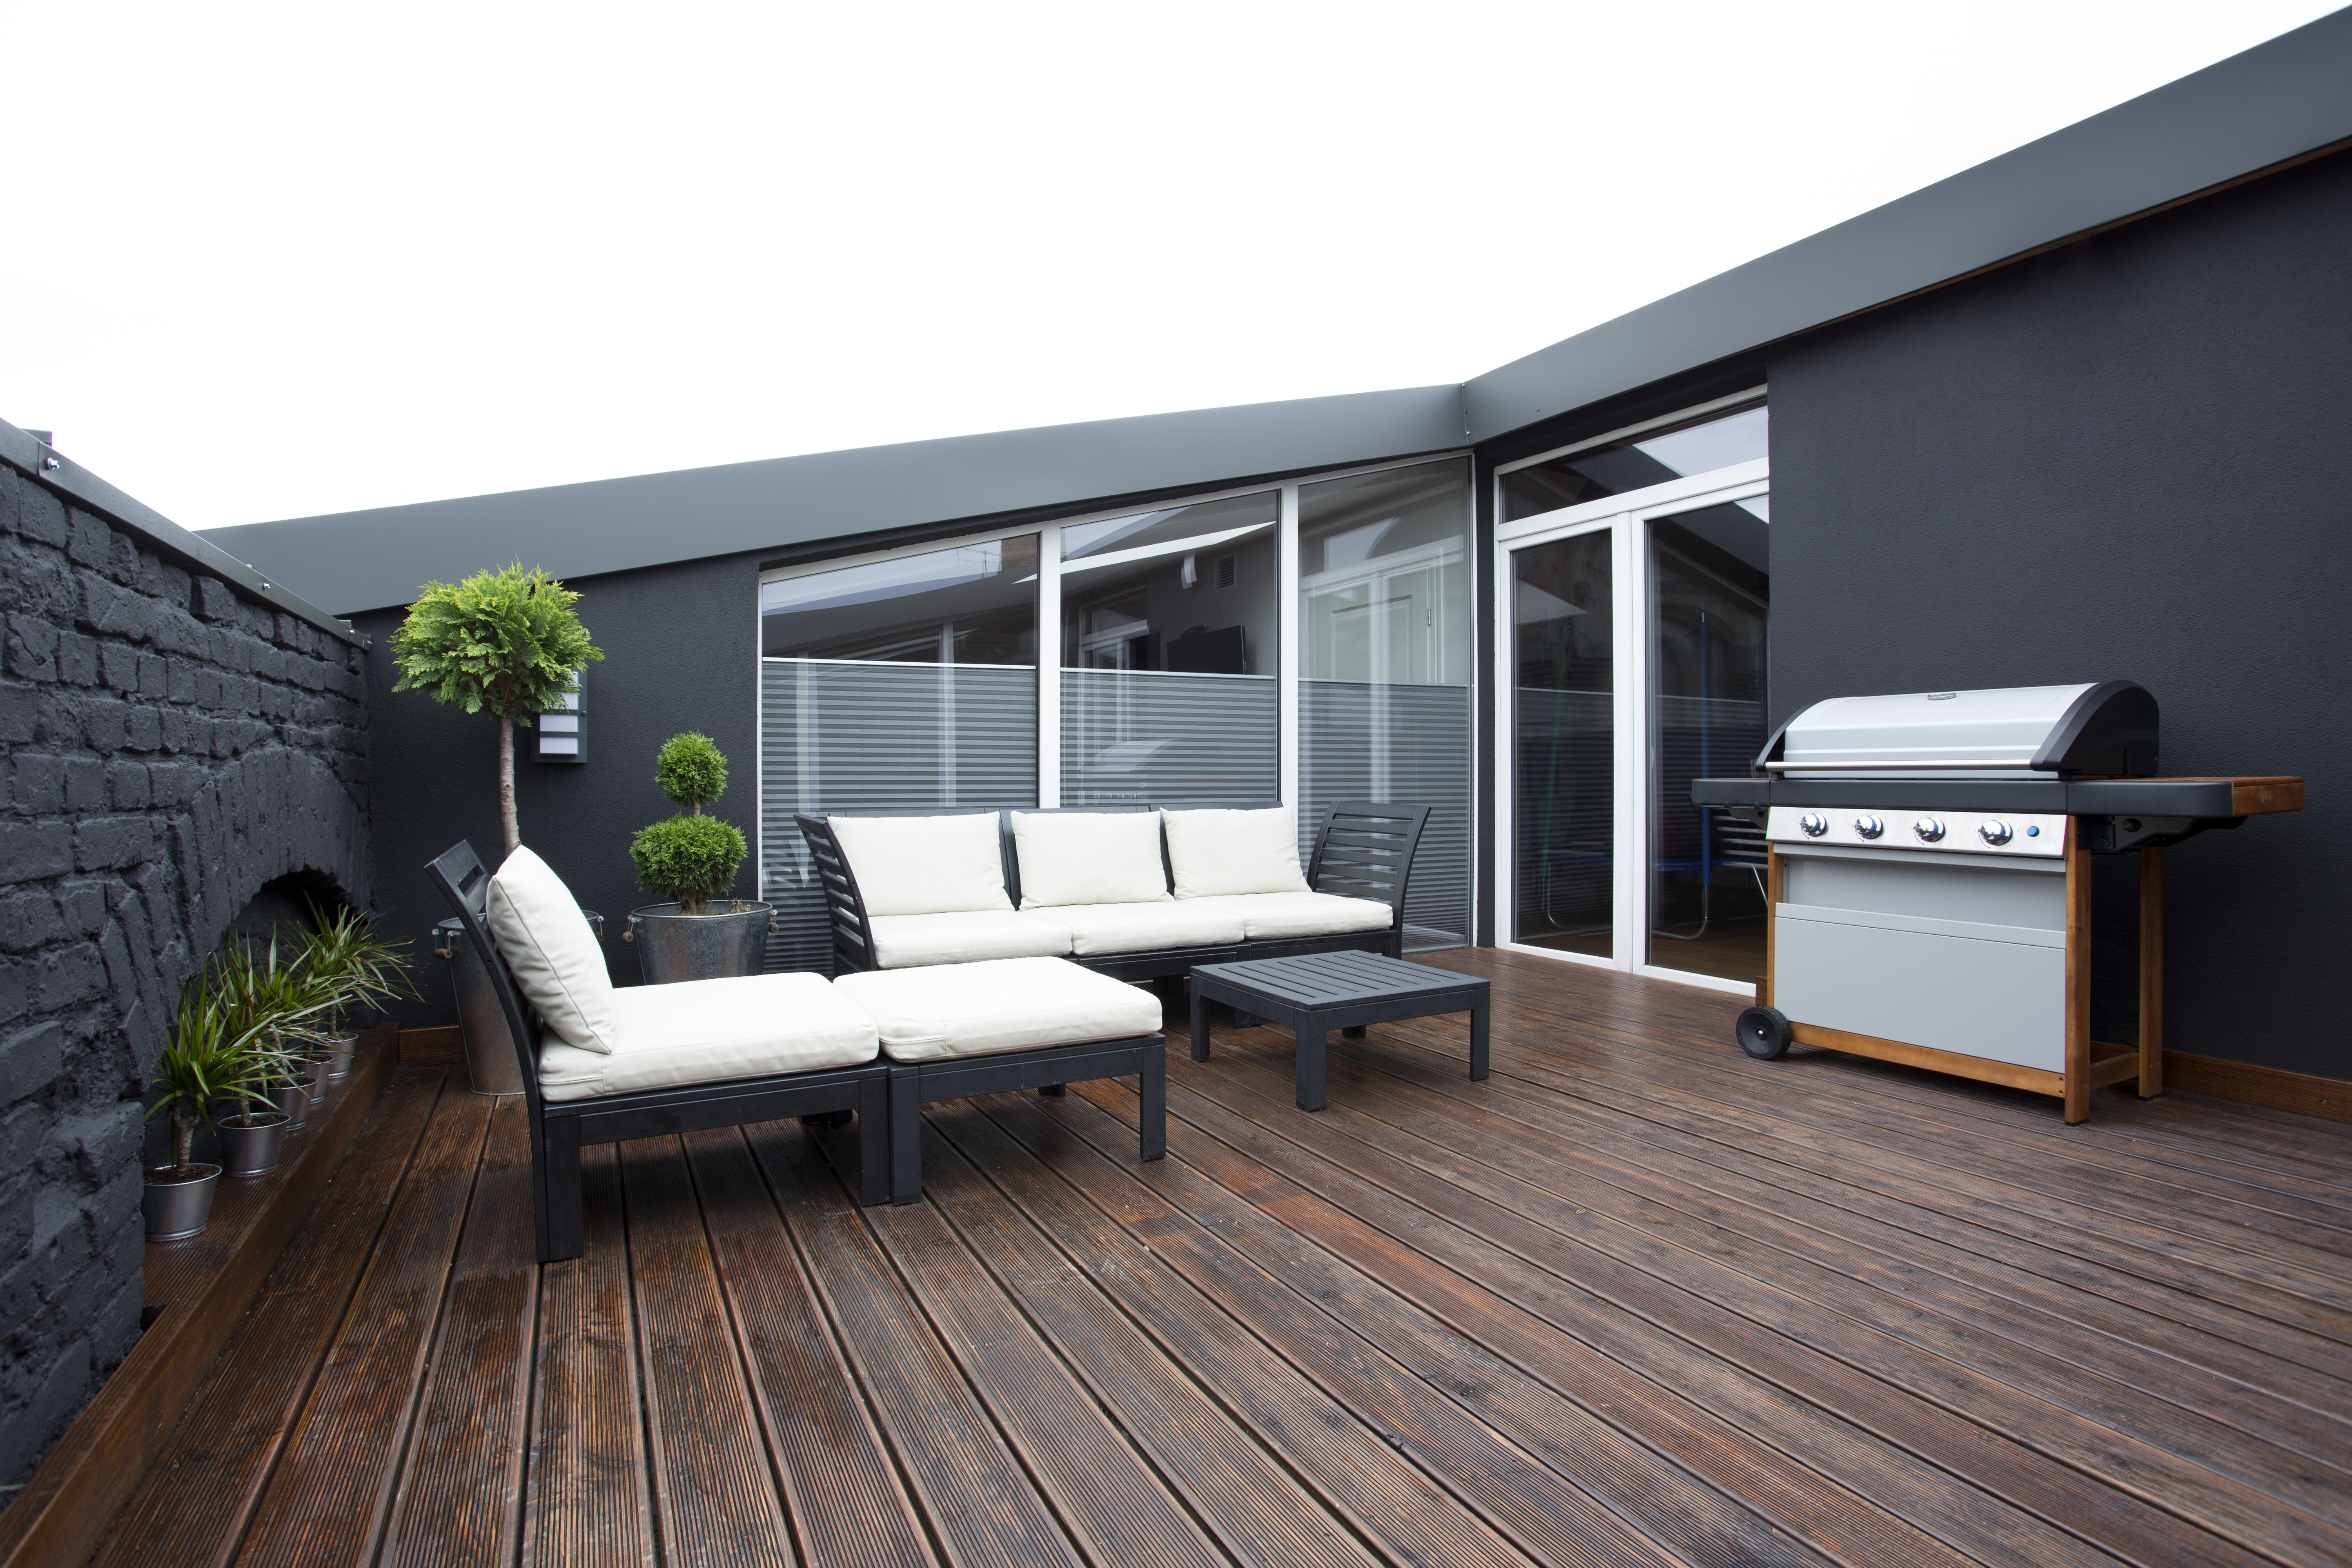 Create The Ultimate Bbq Area For Your Backyard Homesales Latest News Advice